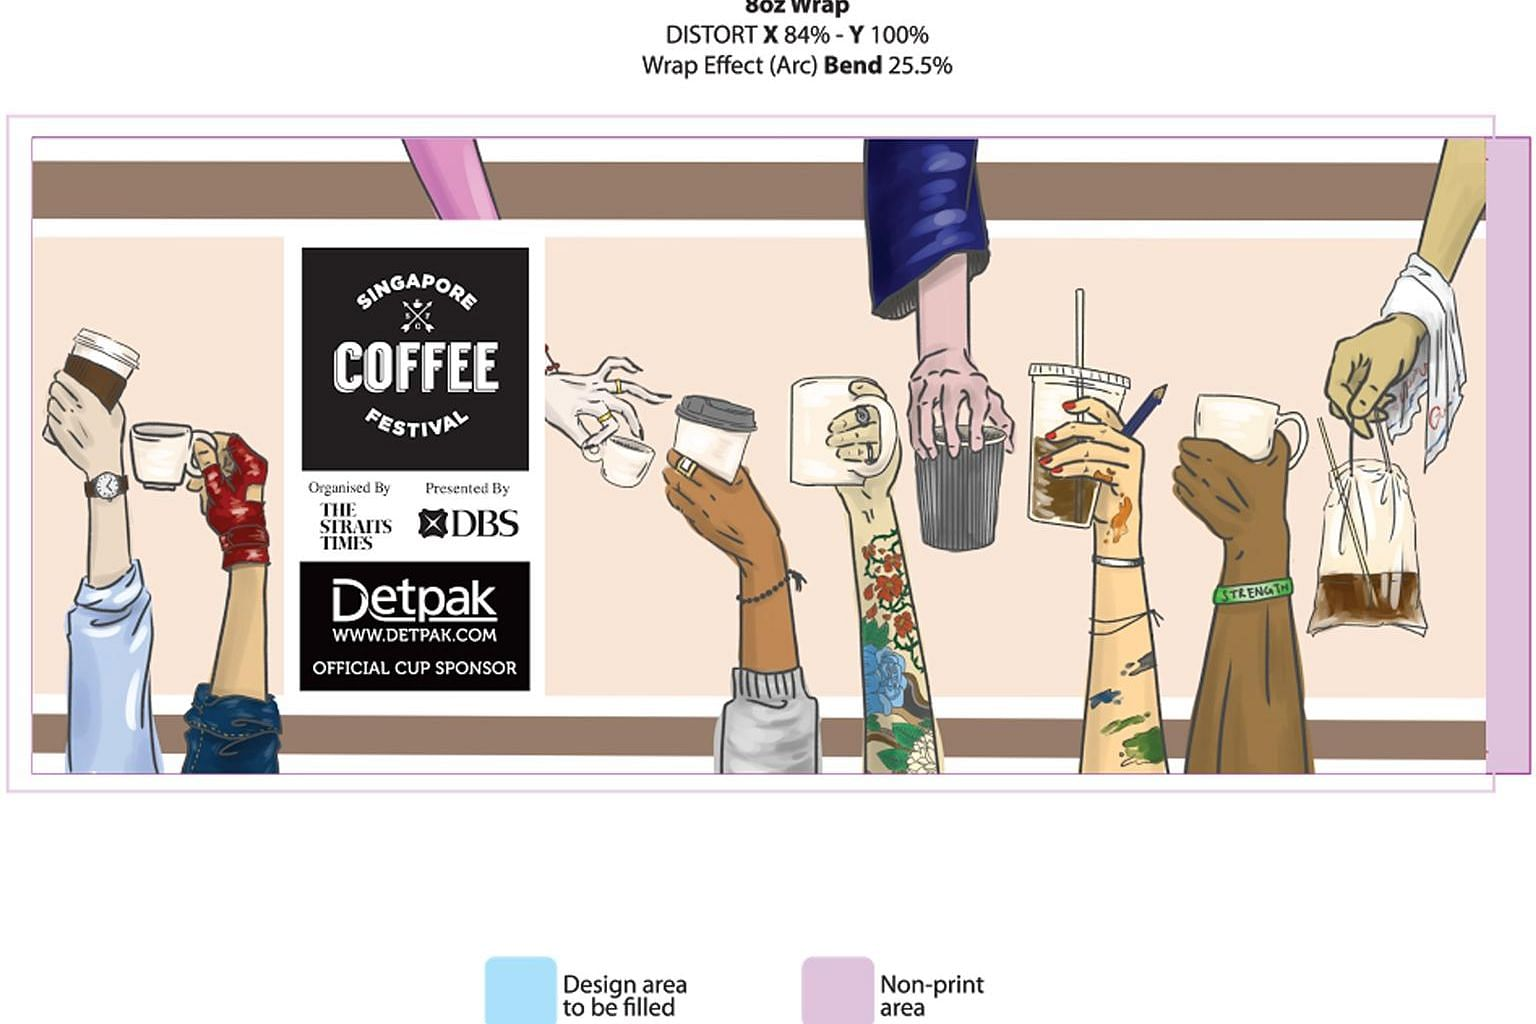 Ms Ellen Chee Shaowei's illustration beat 142 other entries for the Singapore Coffee Festival 2017's Design The Cup competition. Apart from being printed on cups distributed at the festival, it will be on display at several cafes prior to the event.